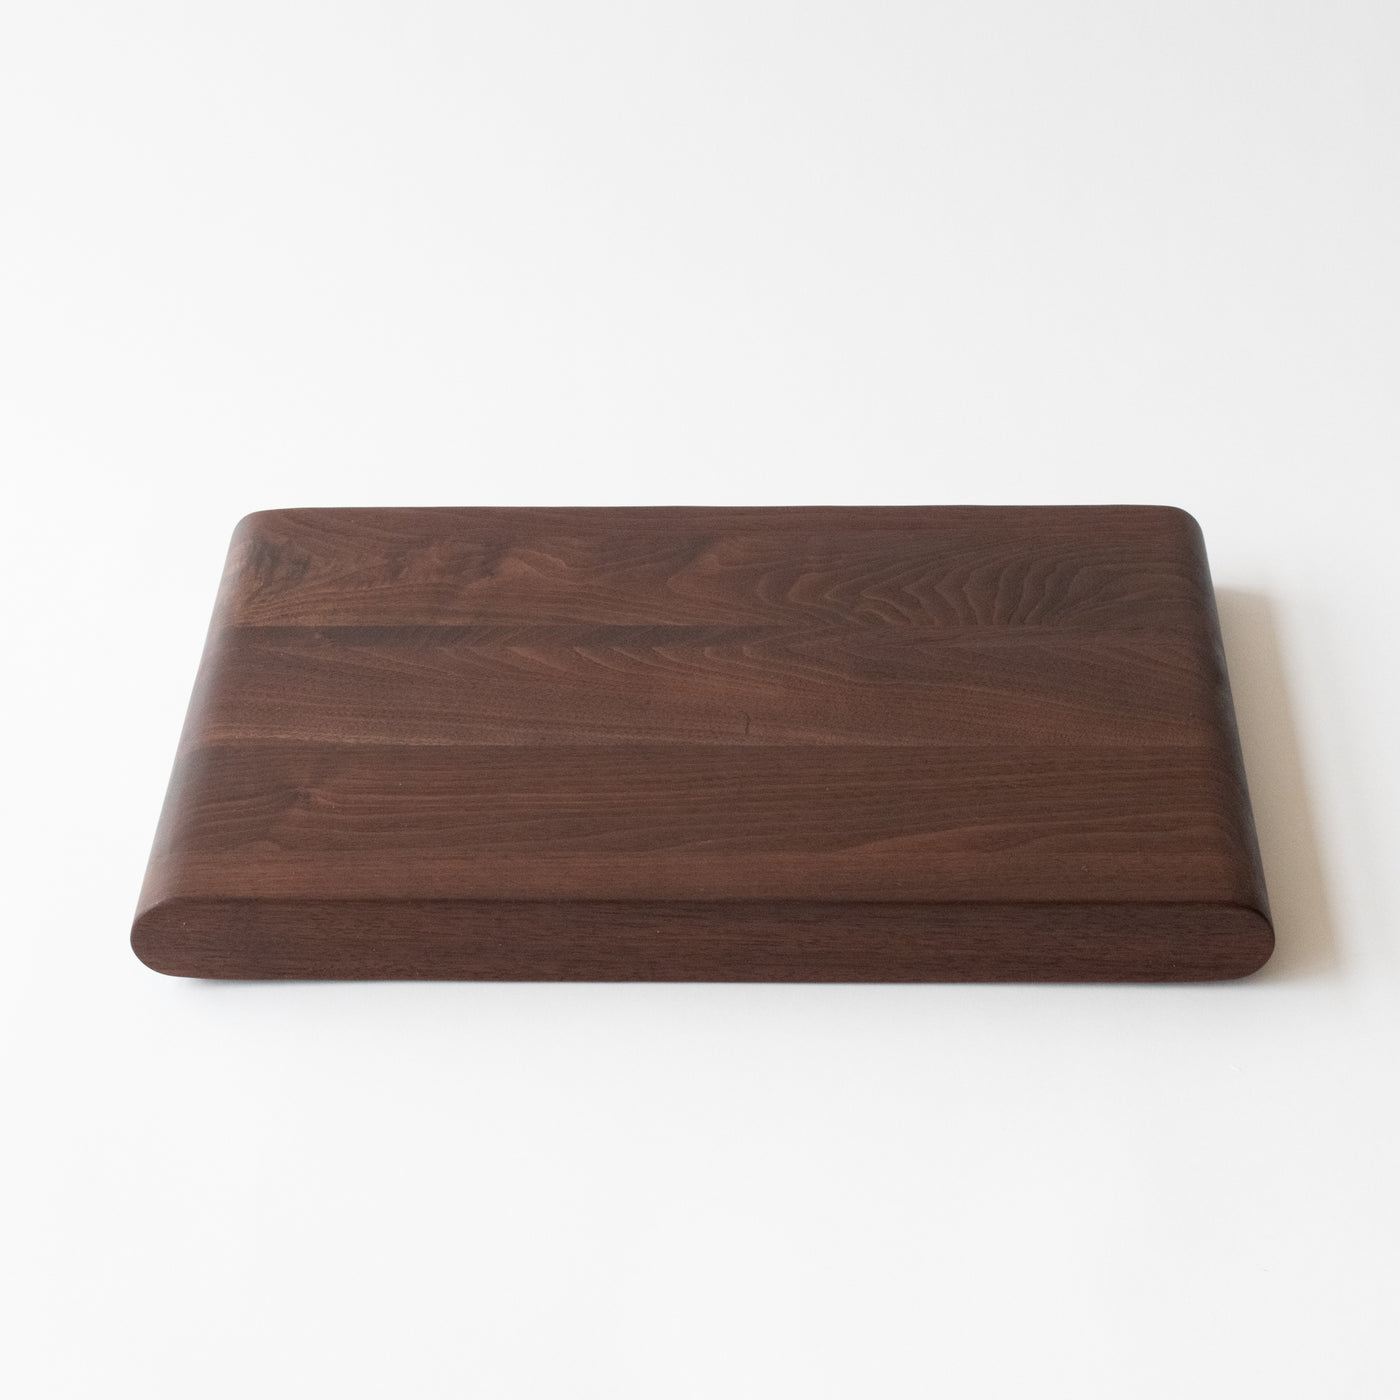 Round Edge Chopping Board